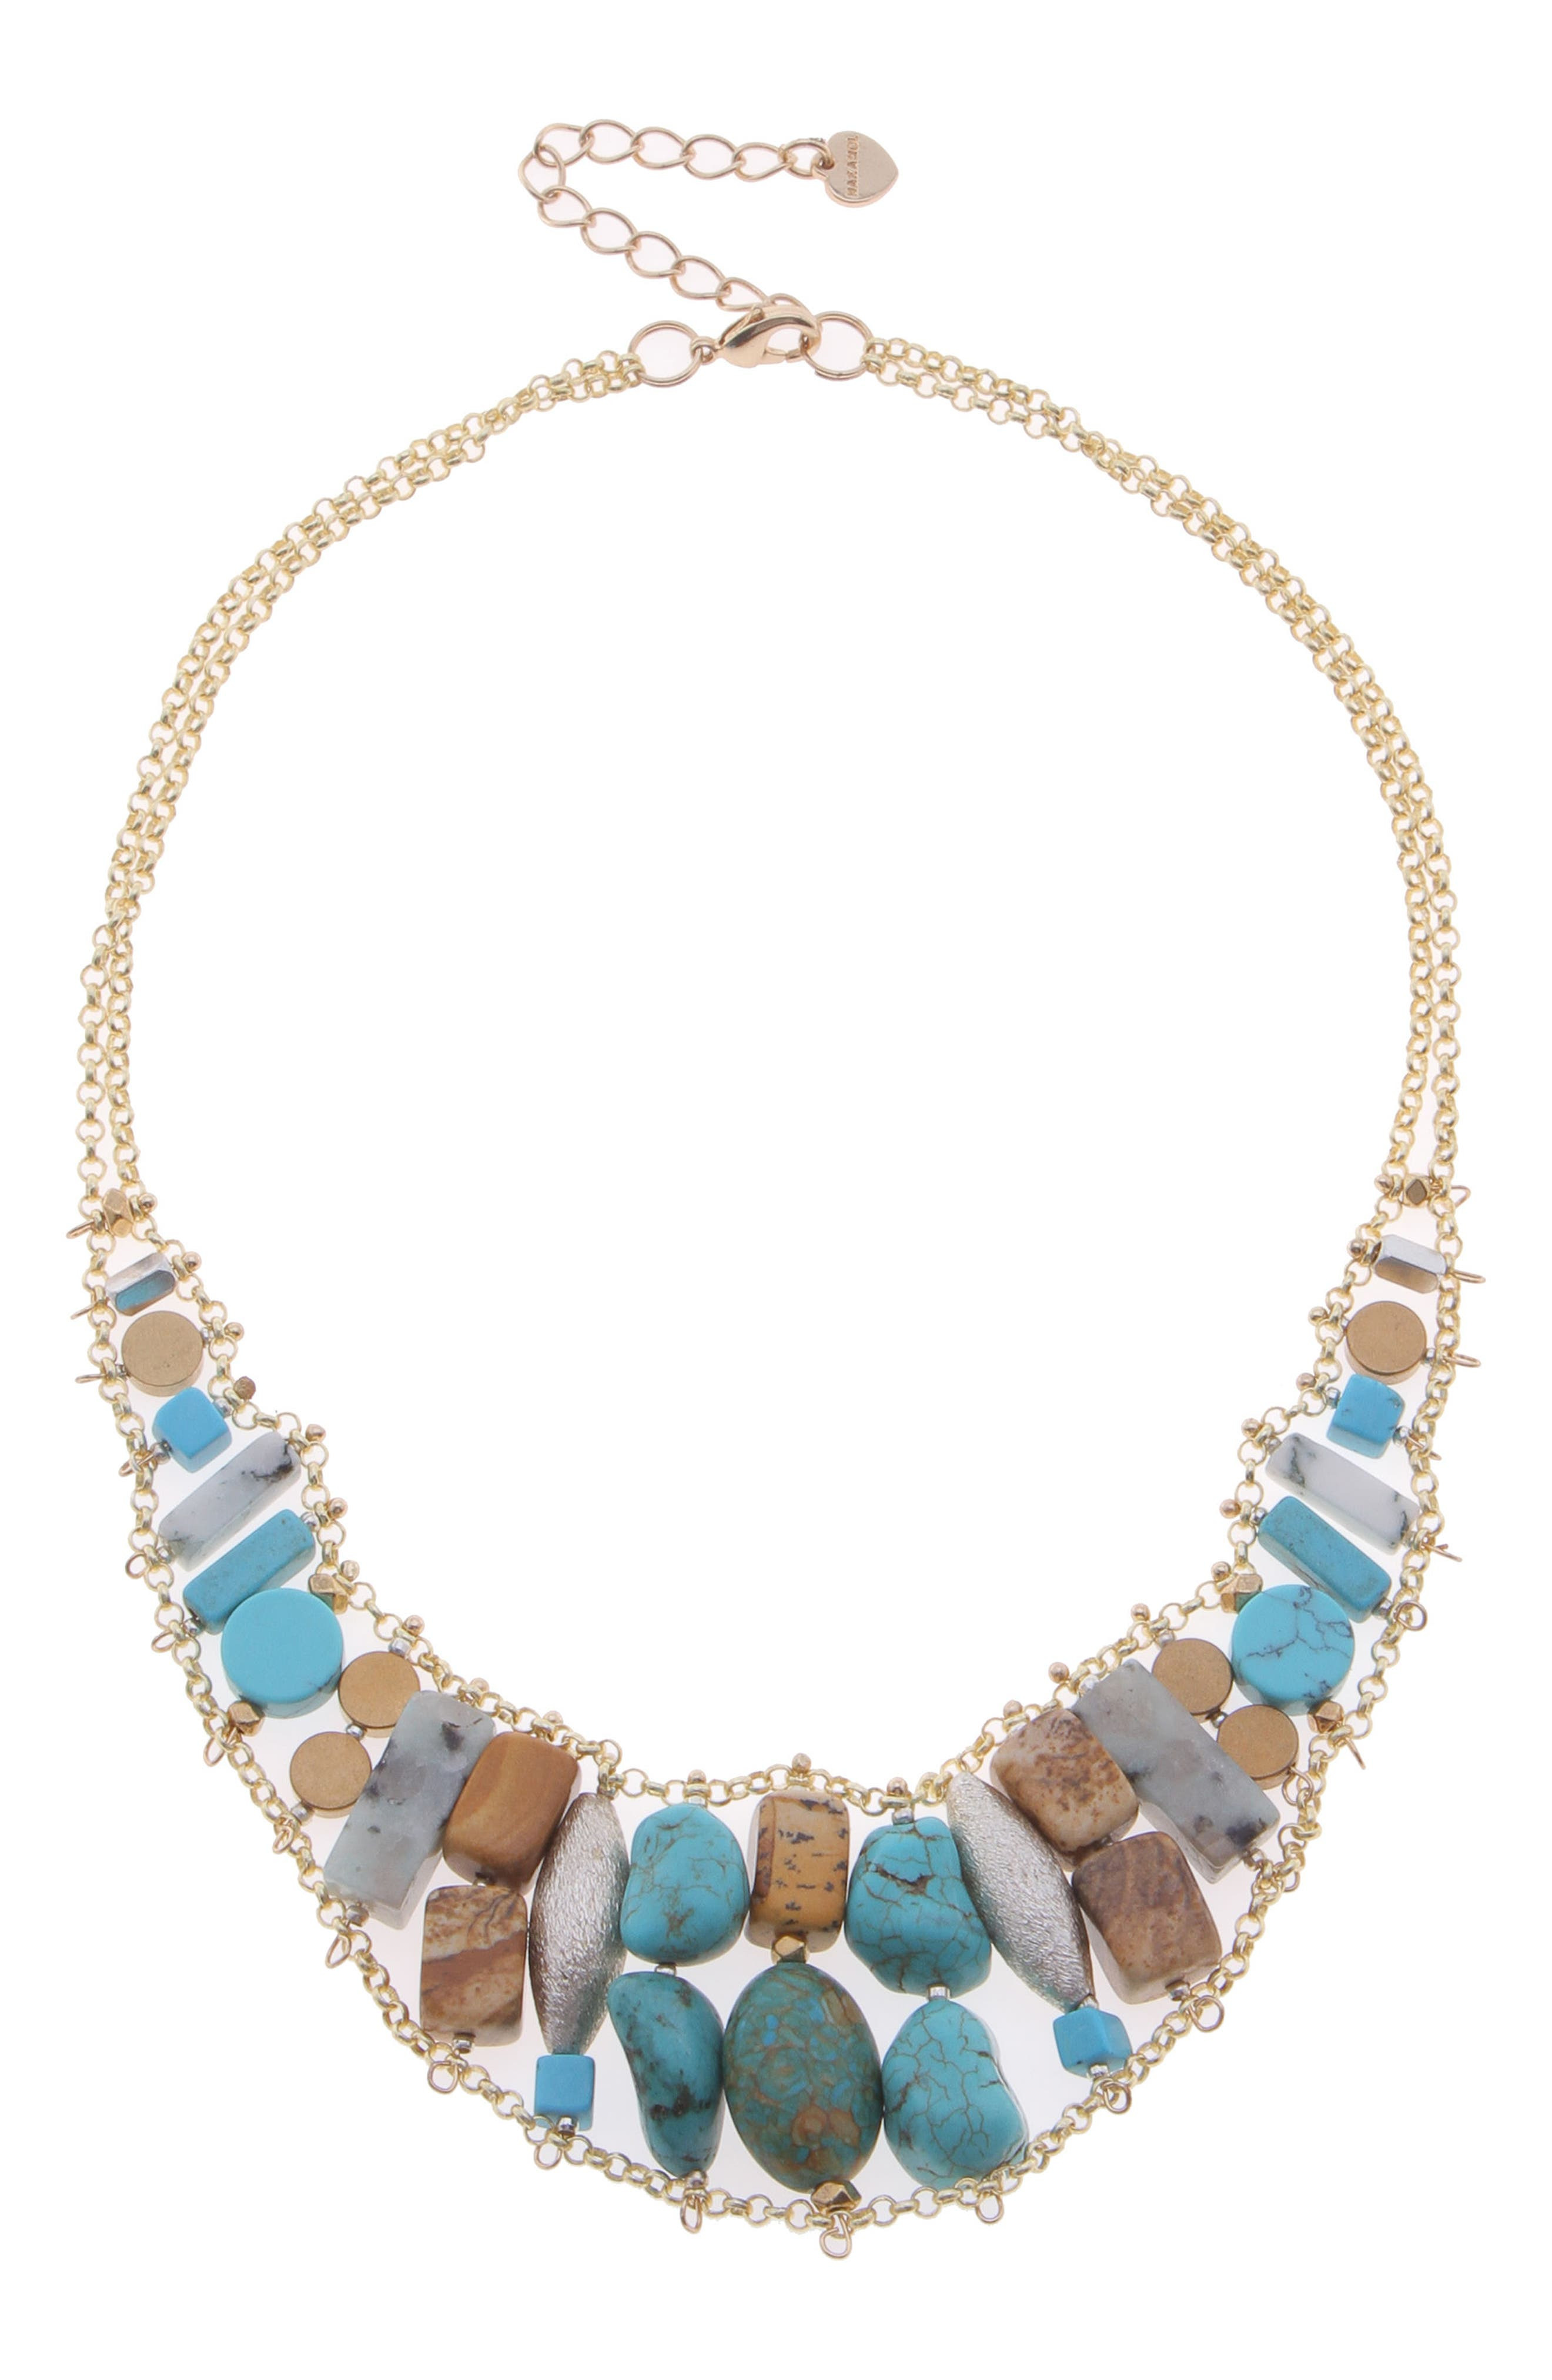 Stone & Freshwater Pearl Collar Necklace,                         Main,                         color, Turquoise